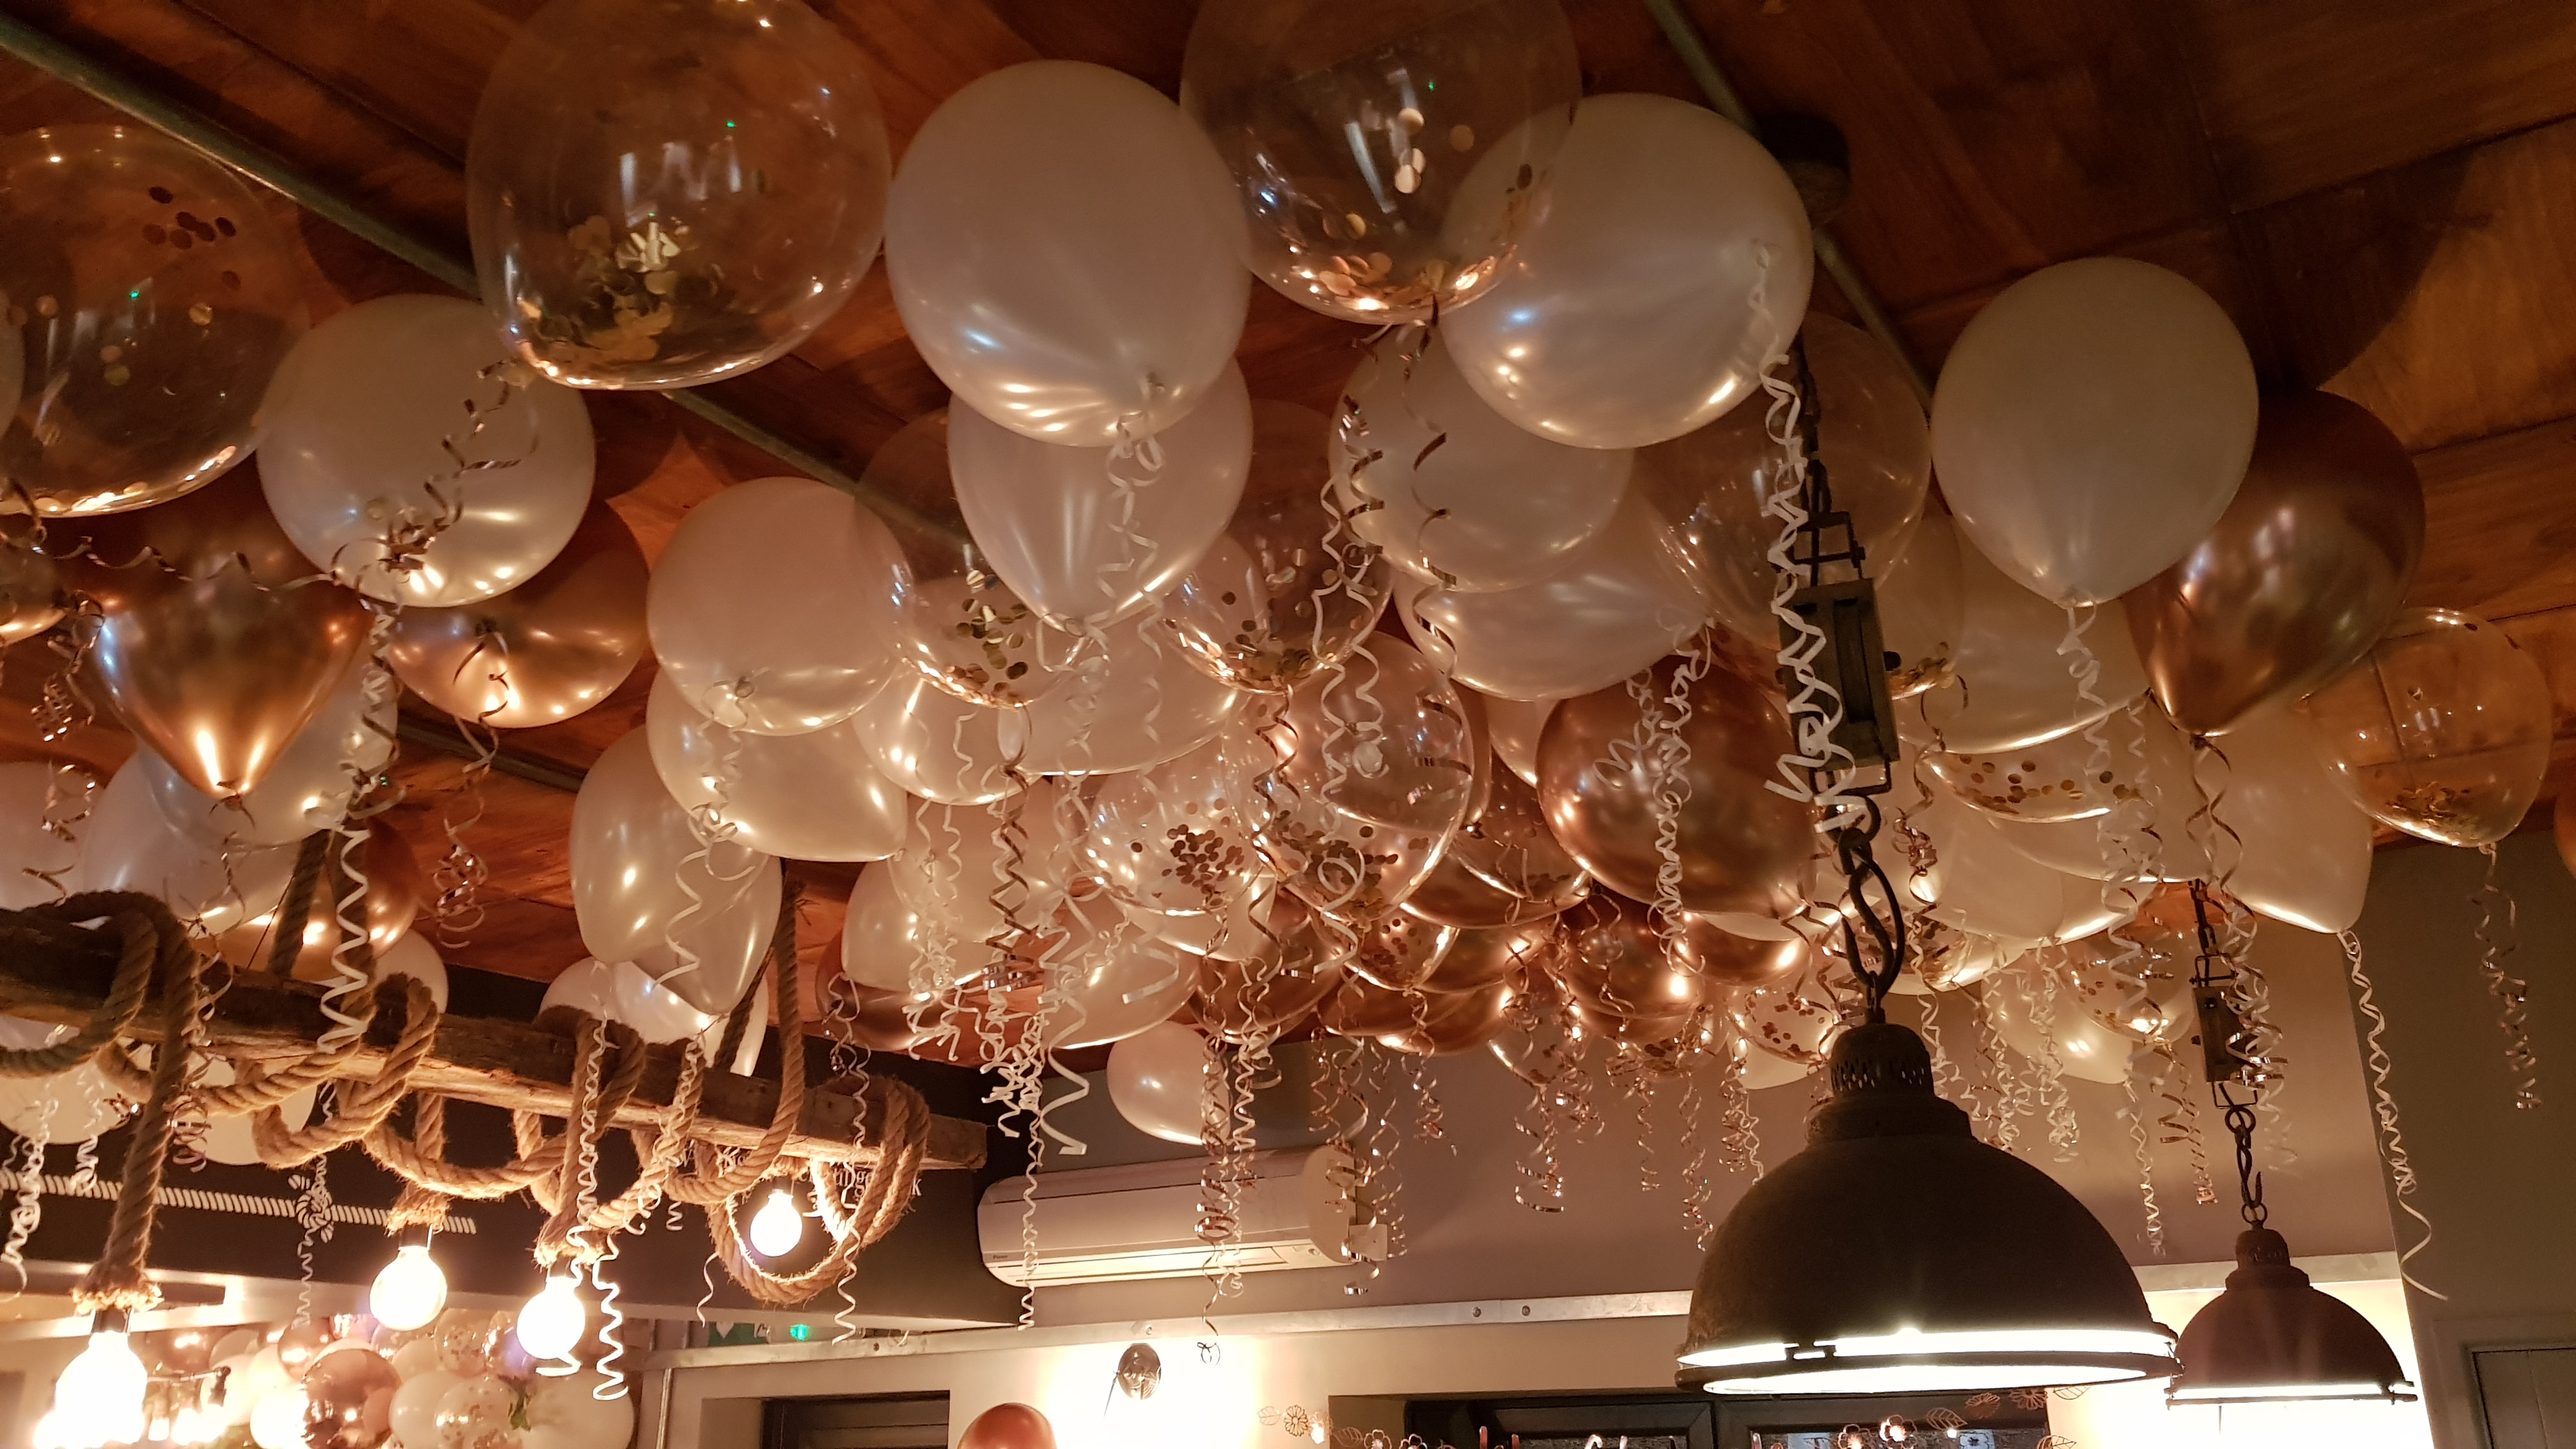 Gold and Ivory balloon ceiling available from Cardiff Balloons